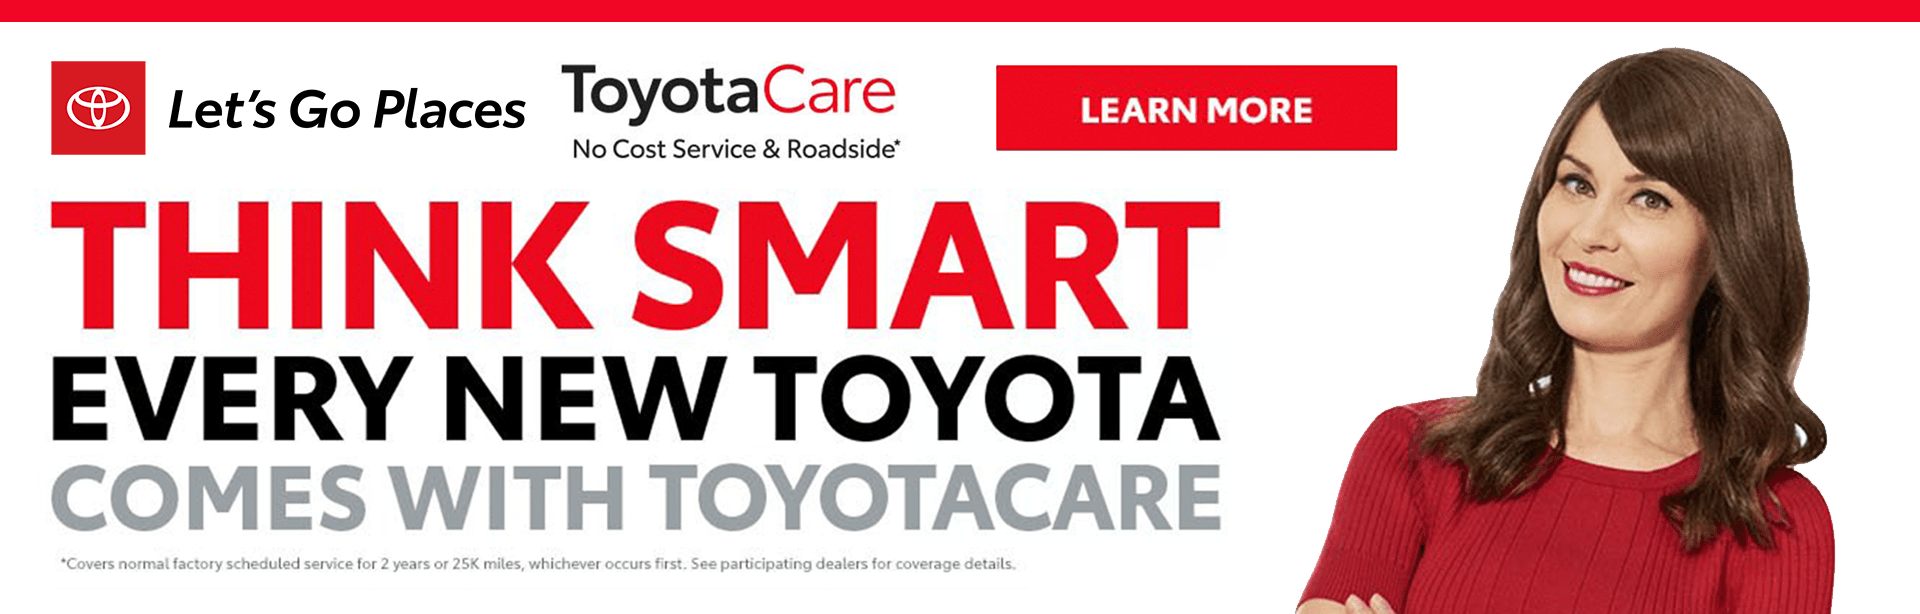 Think Smart: Every new Toyota comes with ToyotaCare